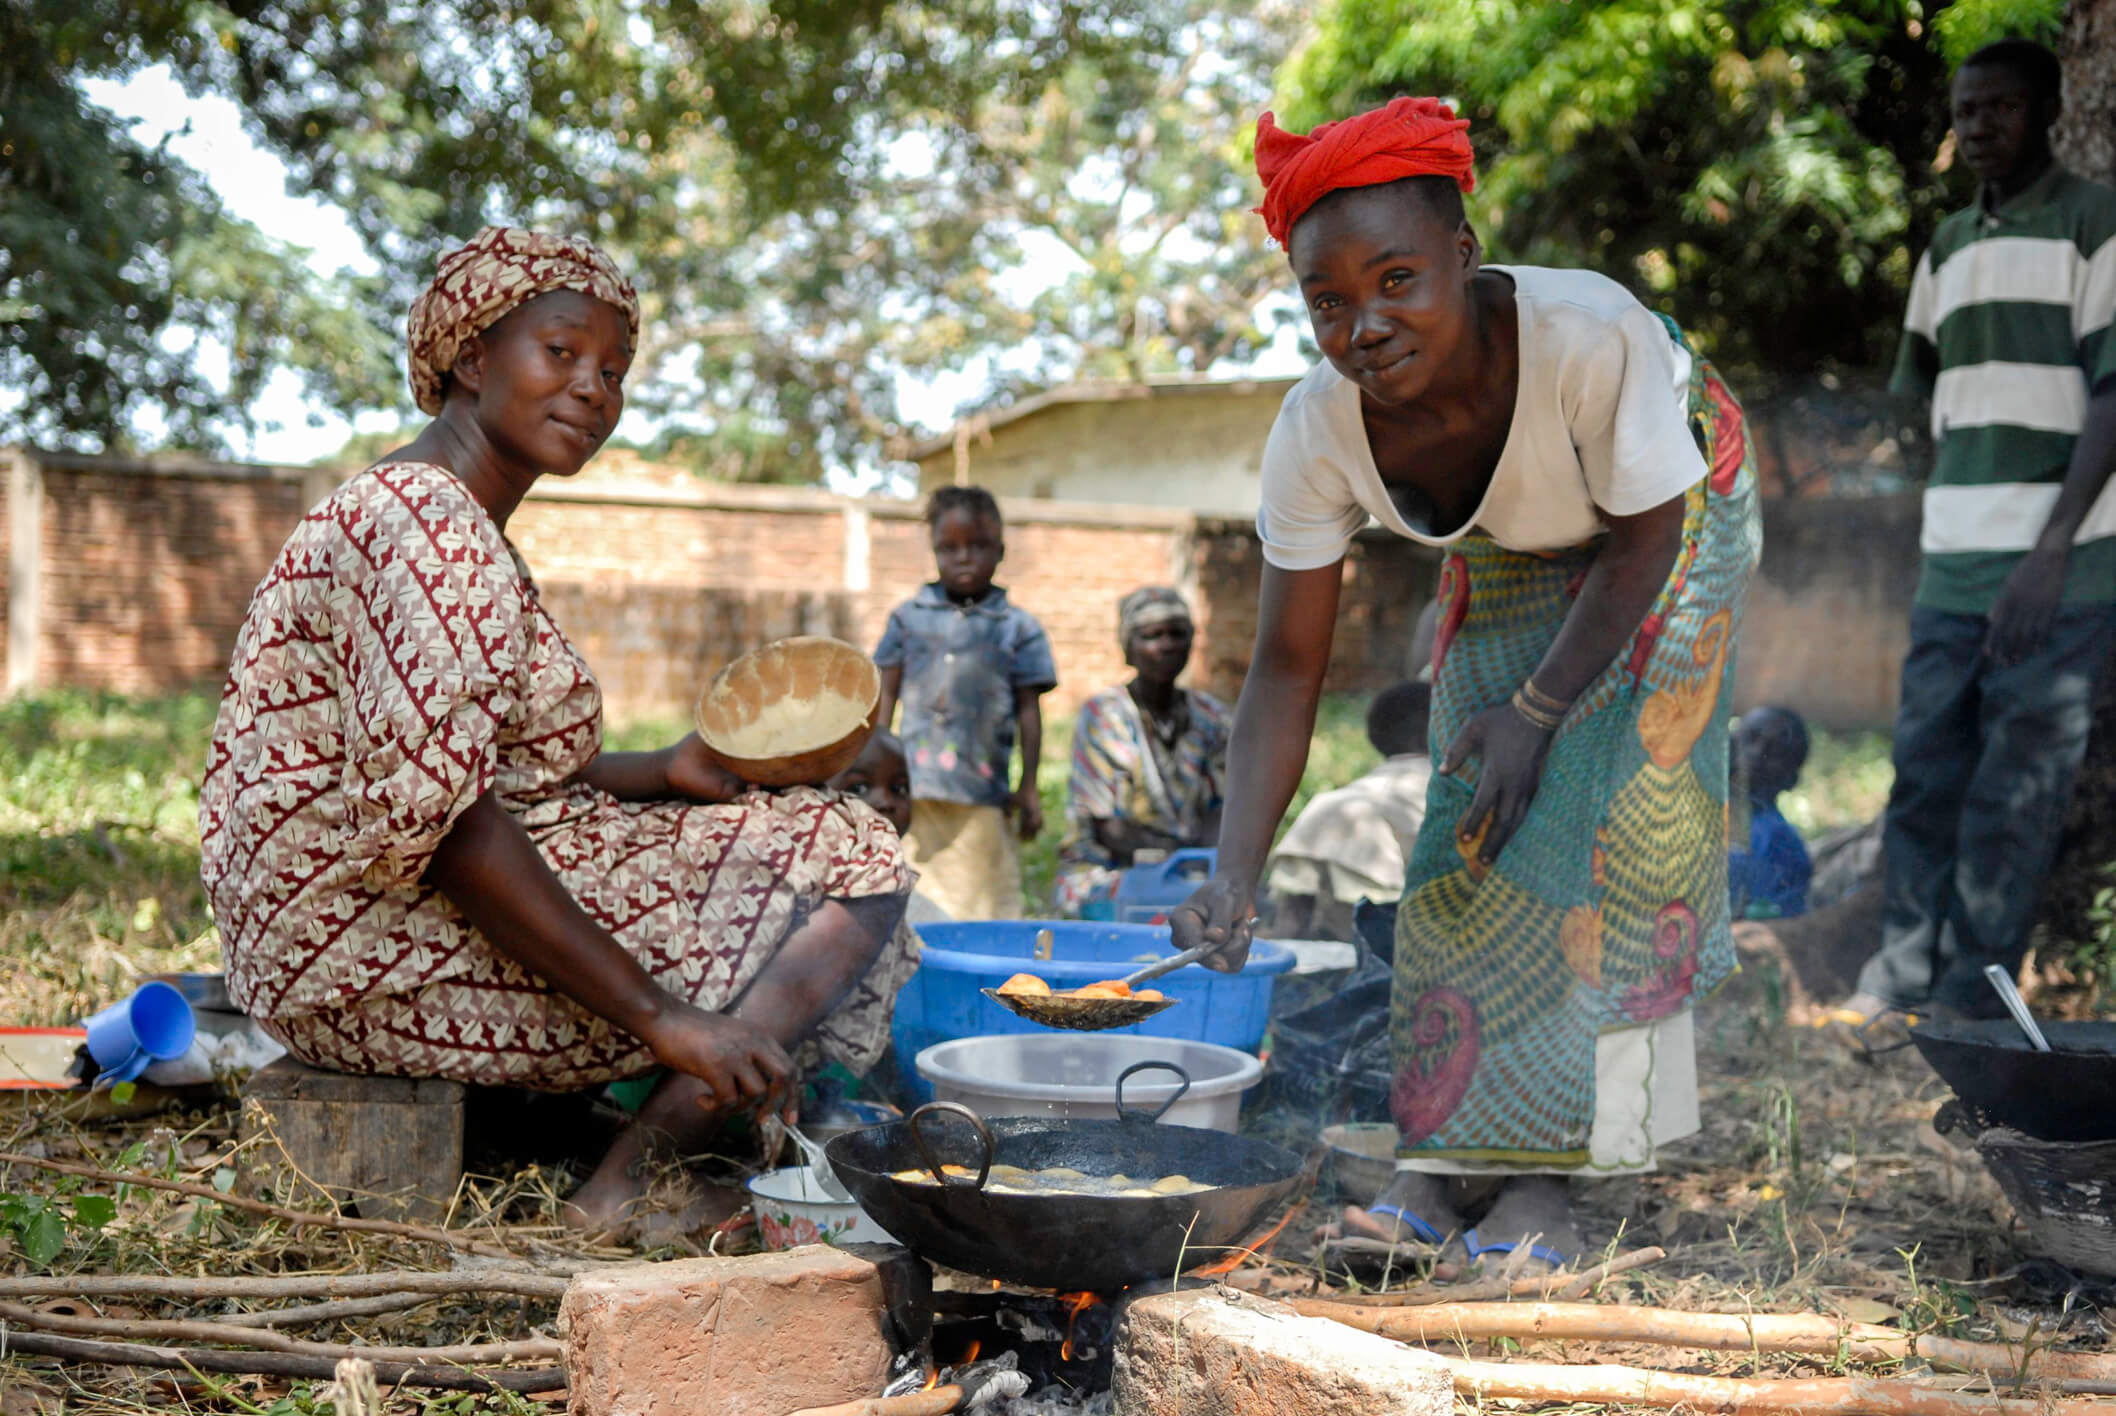 women-cooking-outdoors-chad